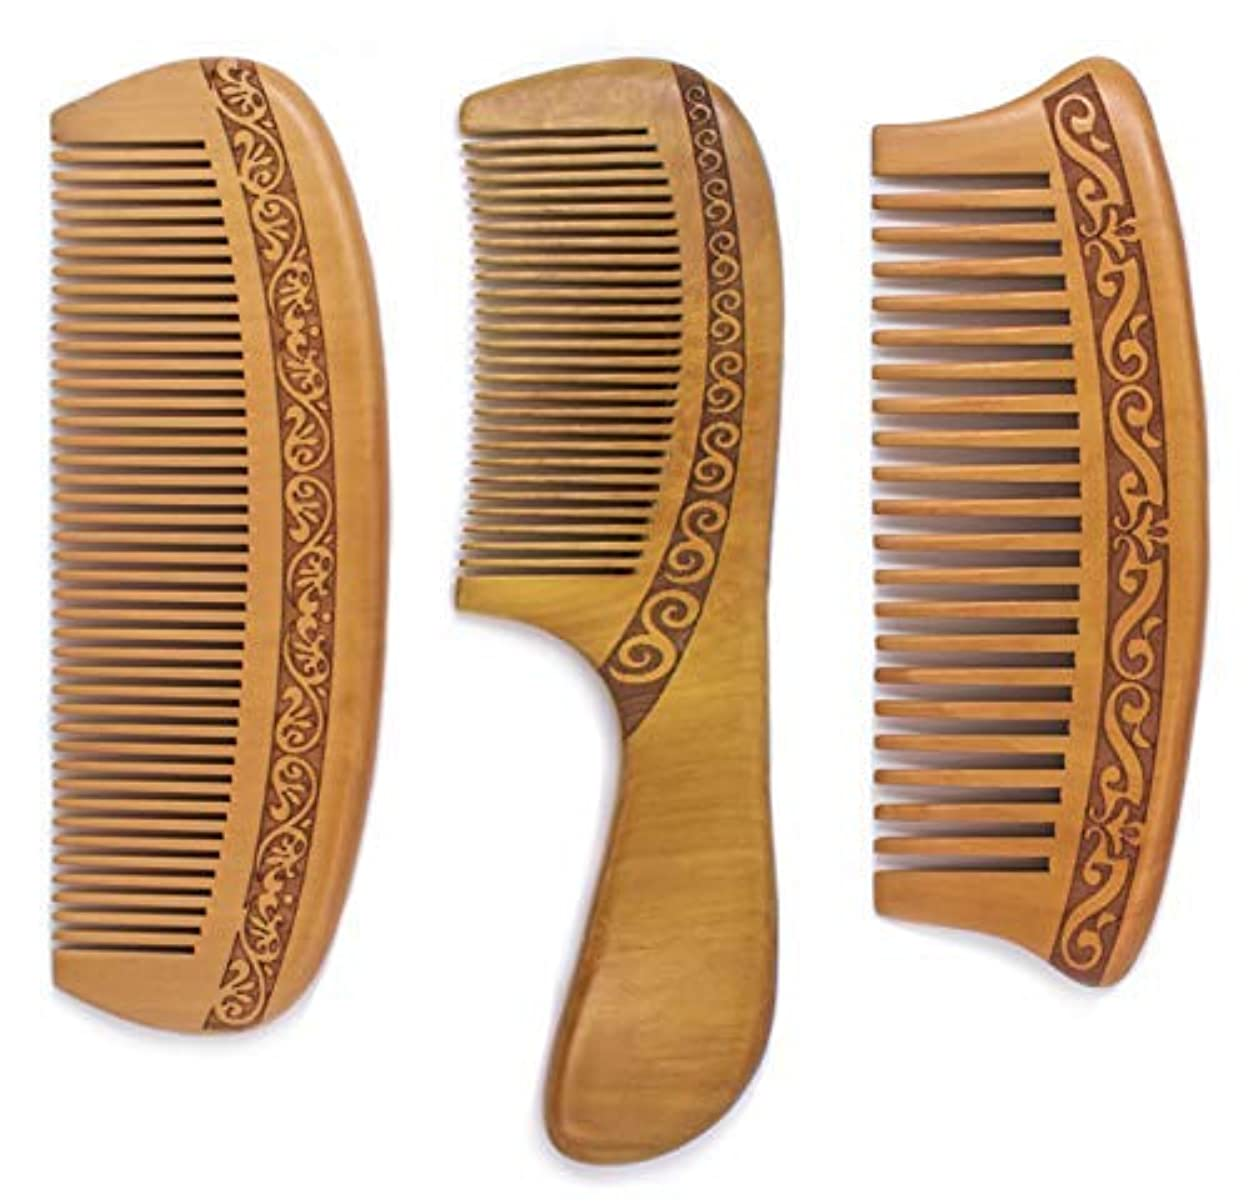 Detangling Comb, Wooden Detangling Fine and Wide Tooth Shower Comb SET, Anti-Static, Great for All Type Hair,...